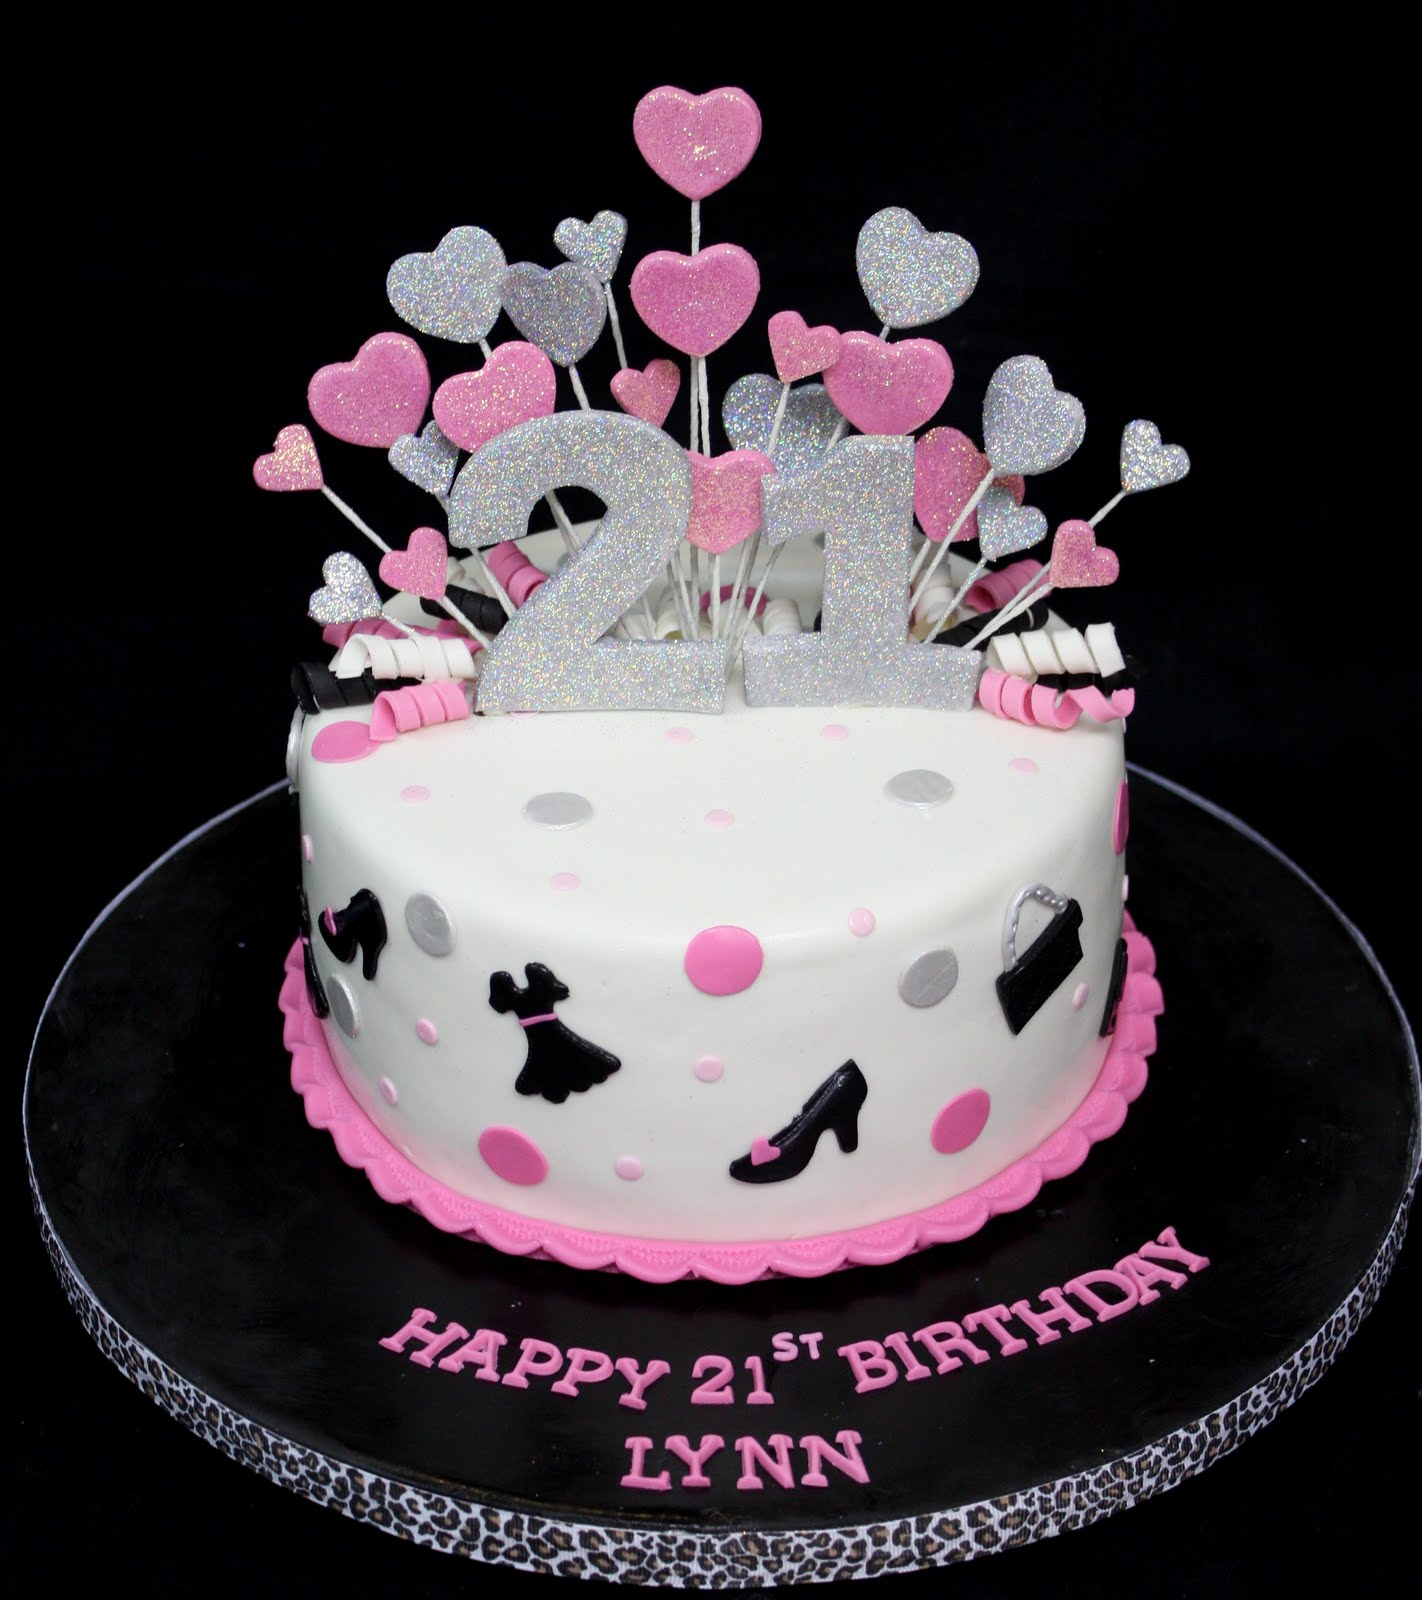 Birthday Cake Decor Ideas : 21st Birthday Cakes   Decoration Ideas Little Birthday Cakes